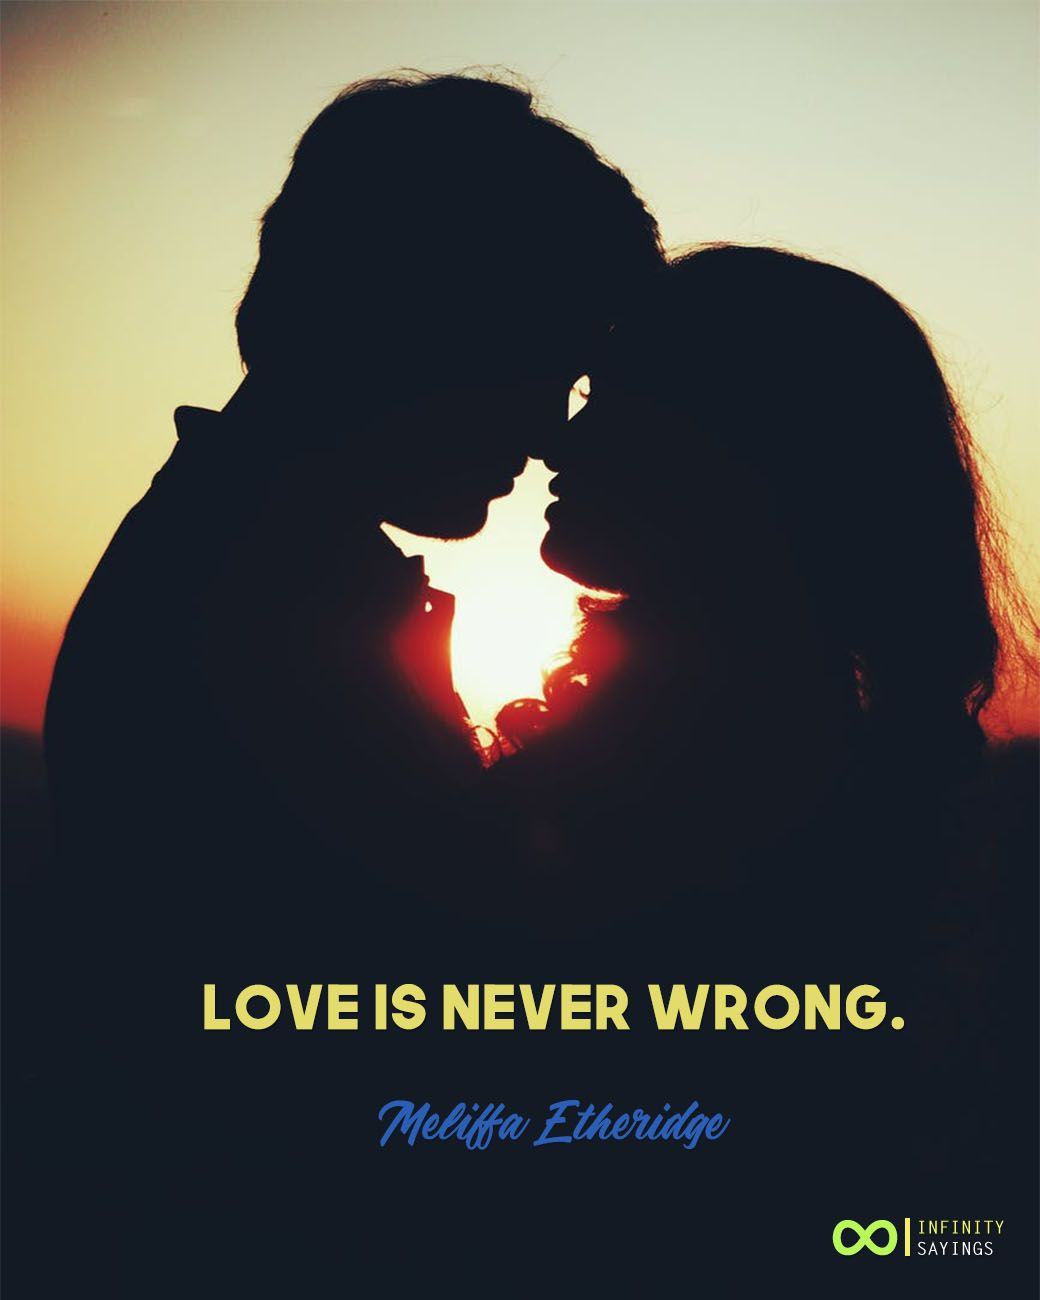 10 Very Short Love Quotes for her/ him - Cute, Romantic